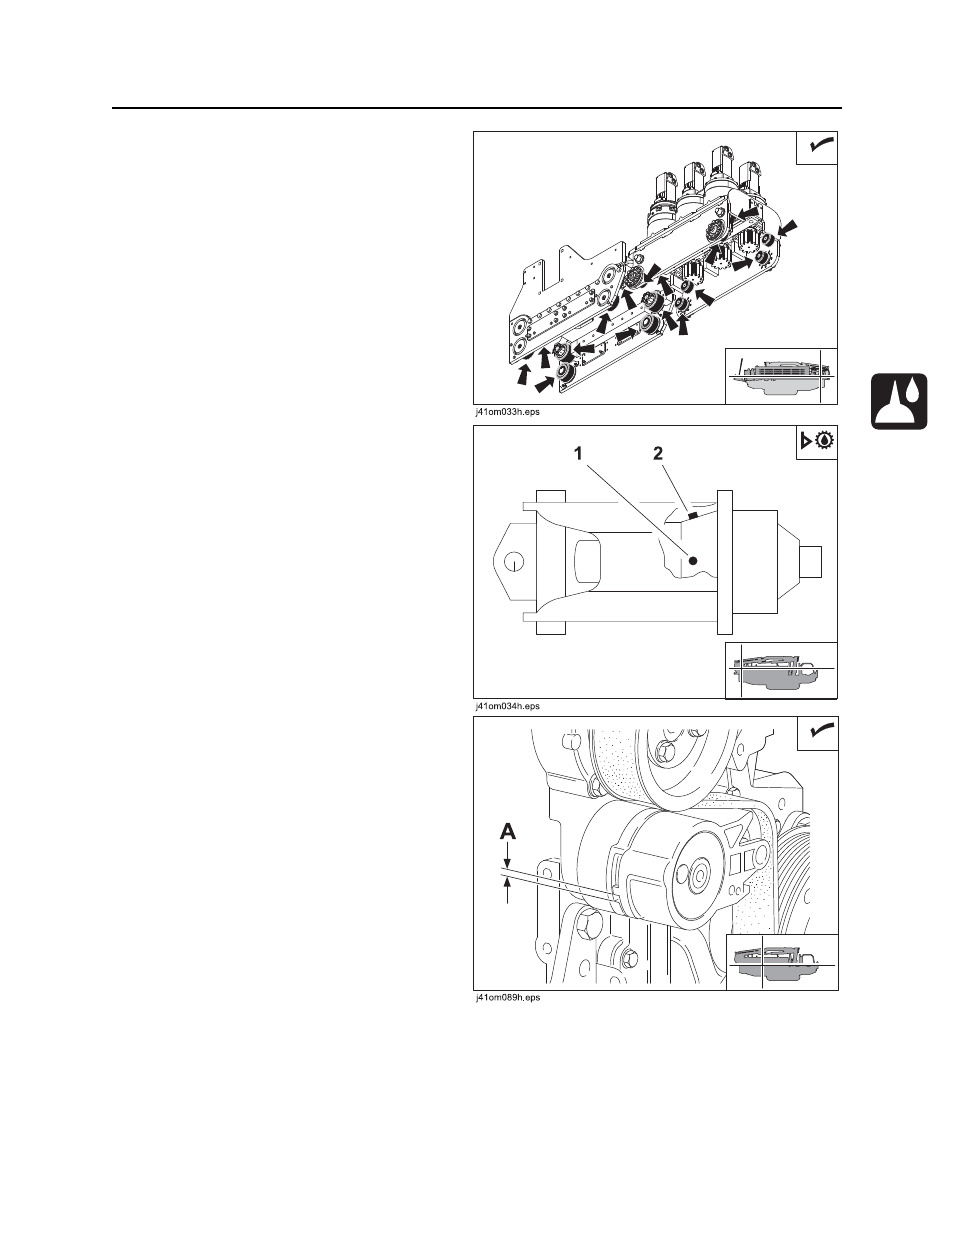 Ditch Witch 1030 Parts Diagram - electrical wiring diagram on bomag wiring diagram, lull wiring diagram, simplicity wiring diagram, american wiring diagram, john deere wiring diagram, western star wiring diagram, van hool wiring diagram, astec wiring diagram, liebherr wiring diagram, lowe wiring diagram, sullair wiring diagram, perkins wiring diagram, clark wiring diagram, demag wiring diagram, new holland wiring diagram, international wiring diagram, 3500 wiring diagram, sakai wiring diagram, ingersoll rand wiring diagram, case wiring diagram,